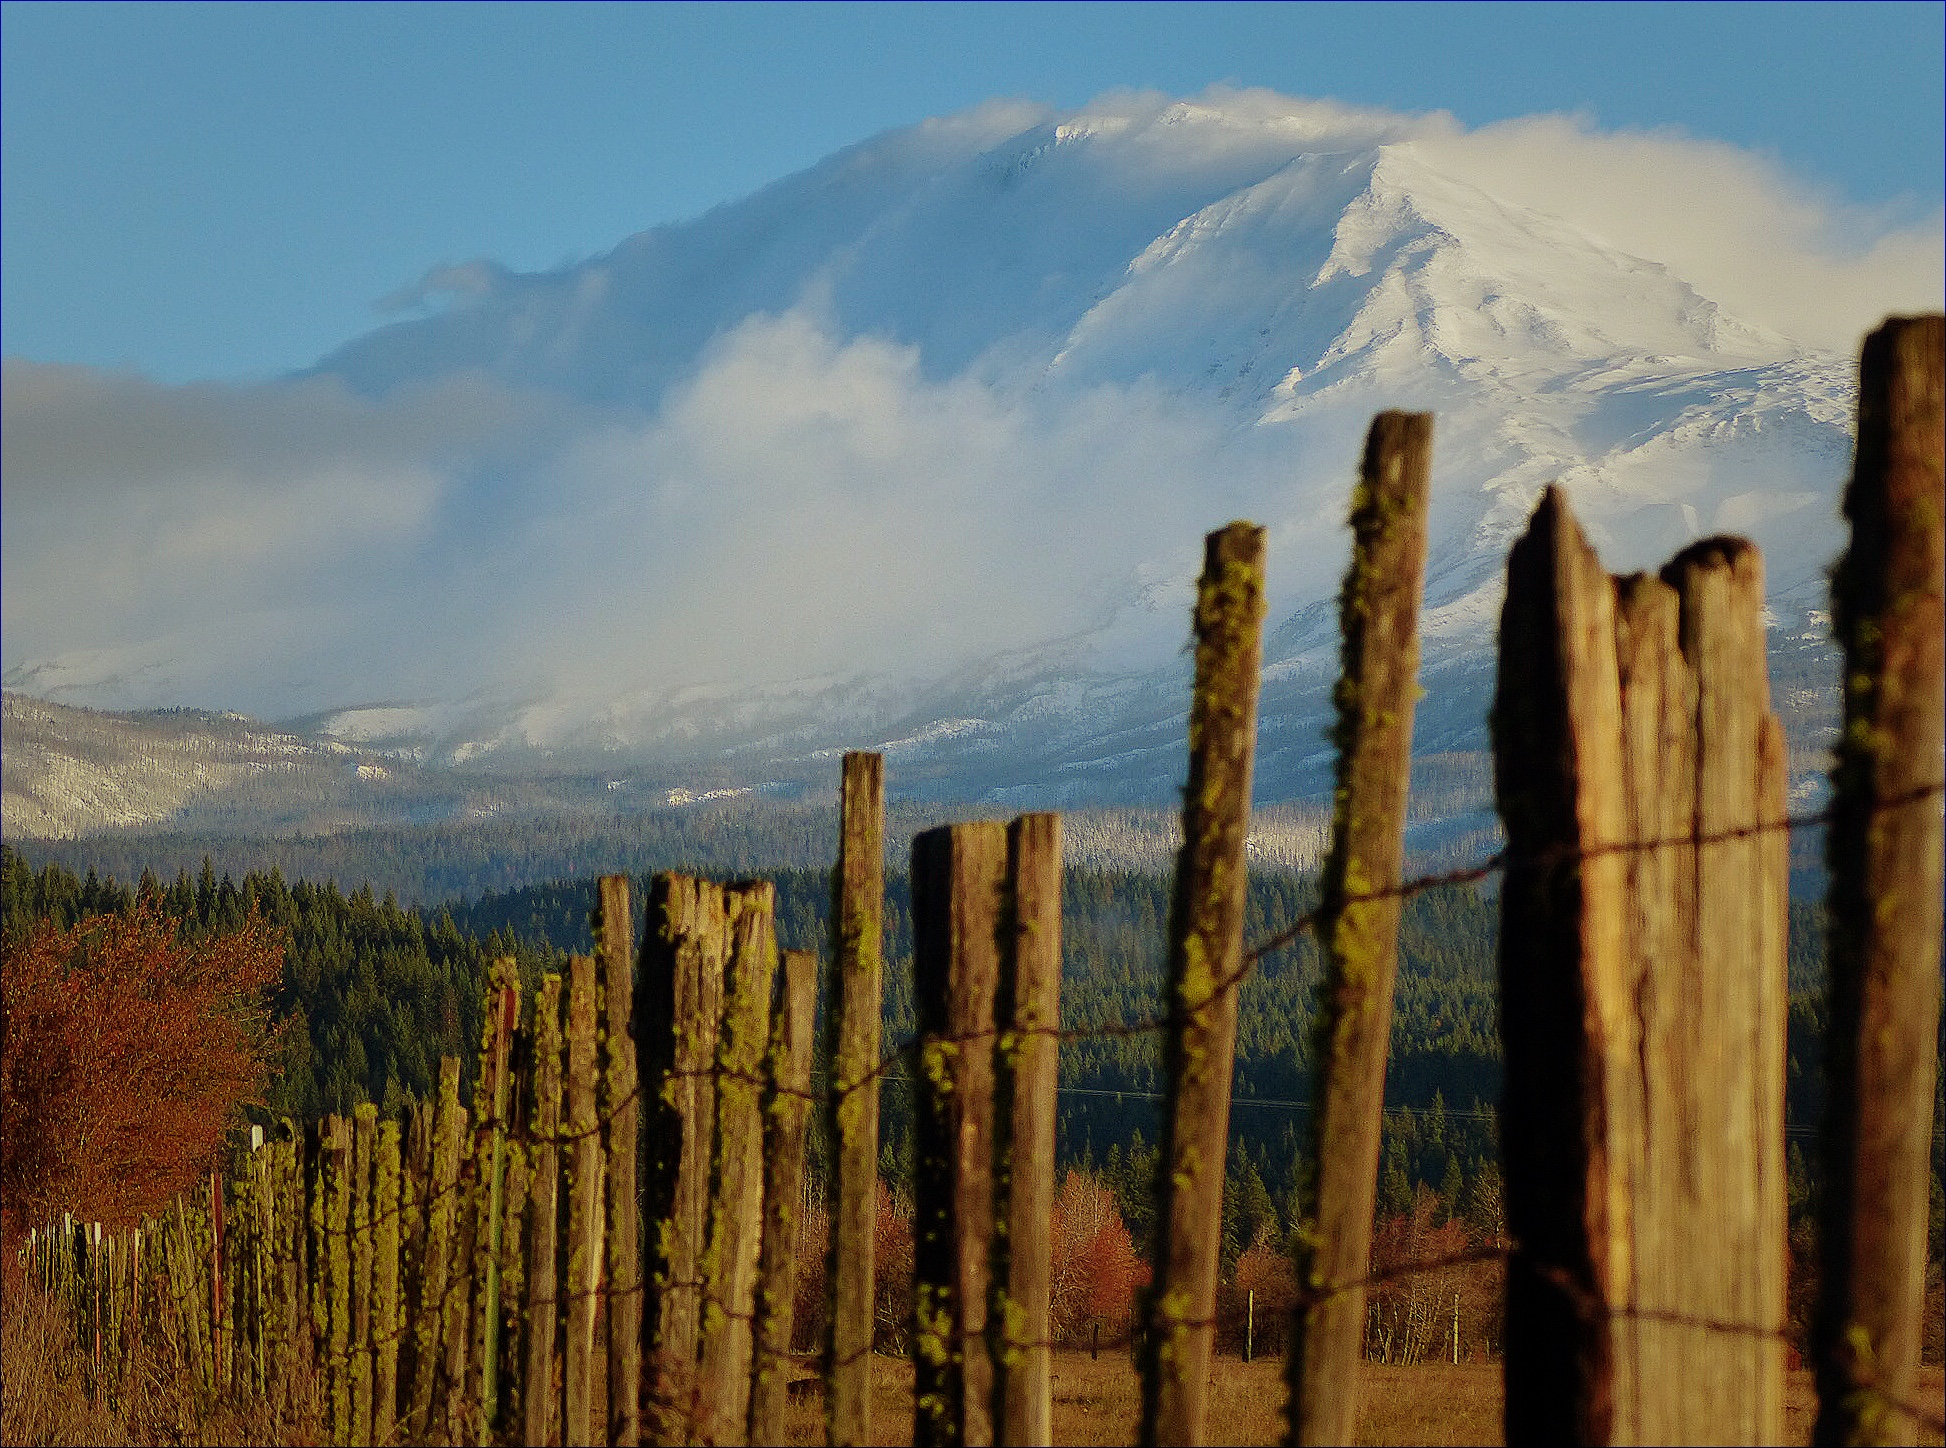 Mt. Adams from Trout Lake, WA